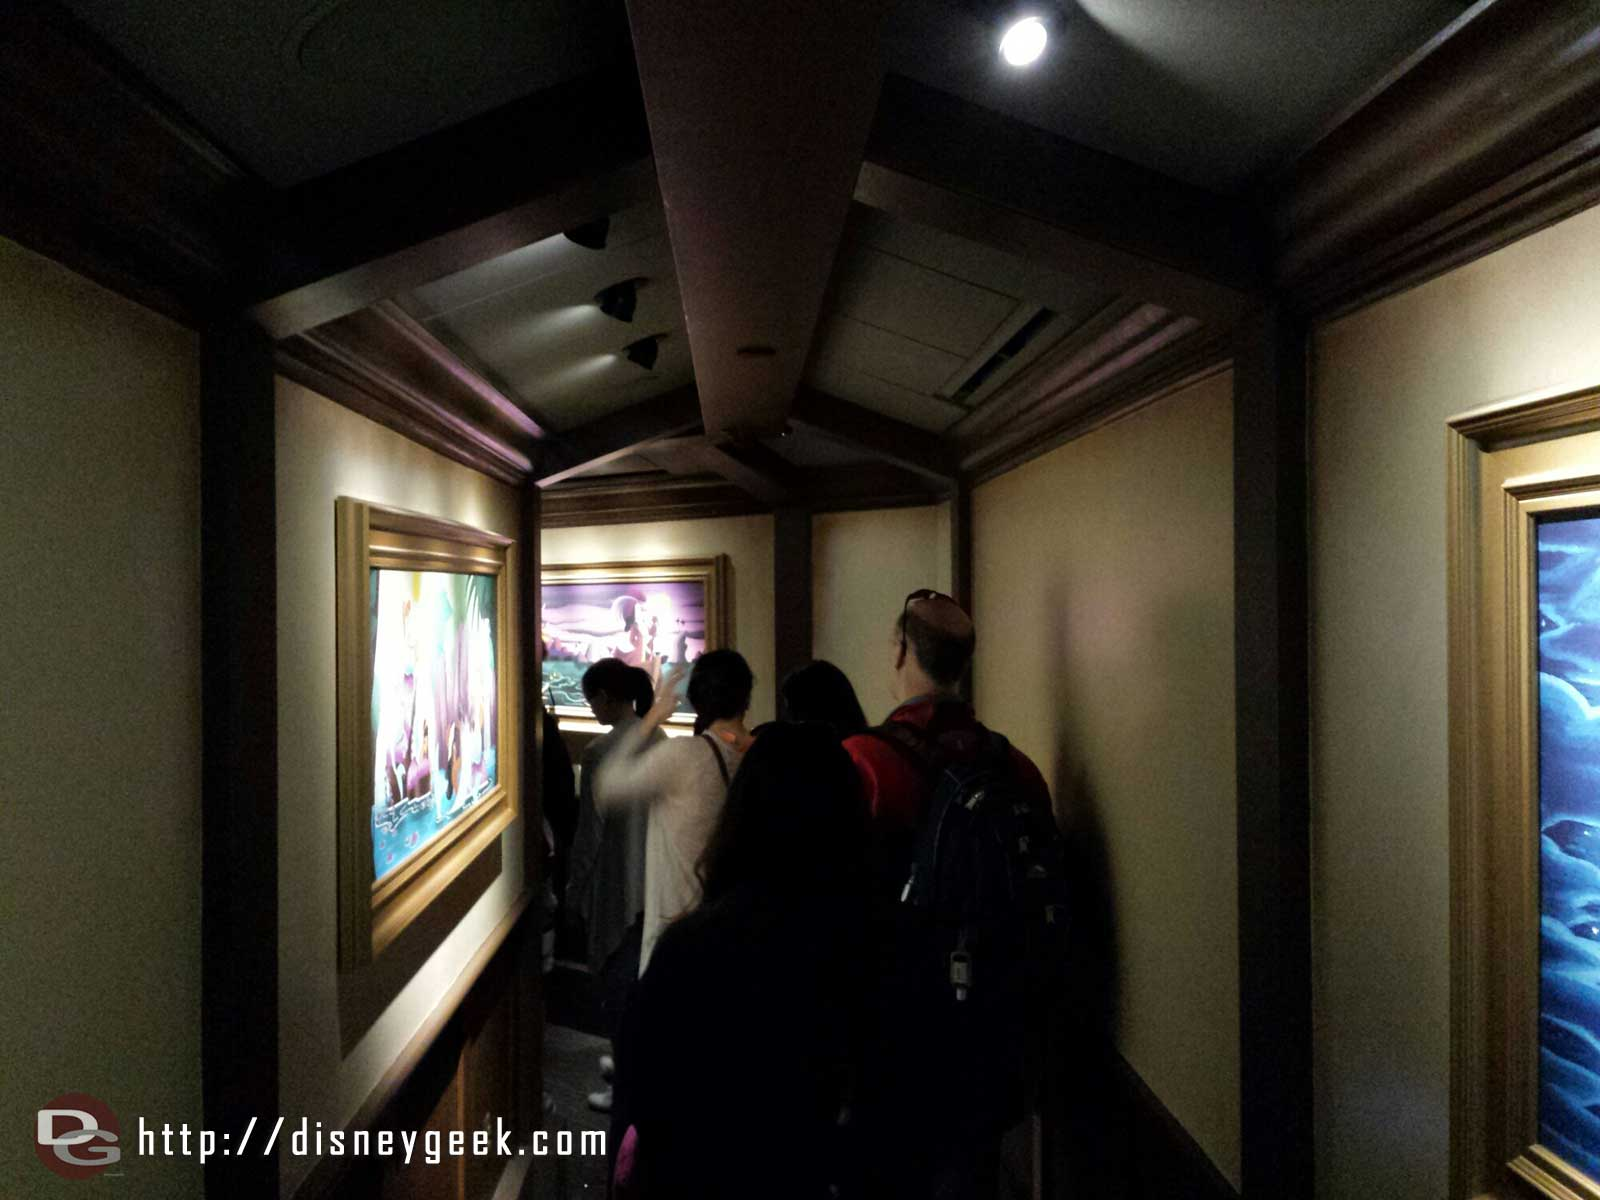 The first part of the queue is an art gallery #WDW Peter Pan